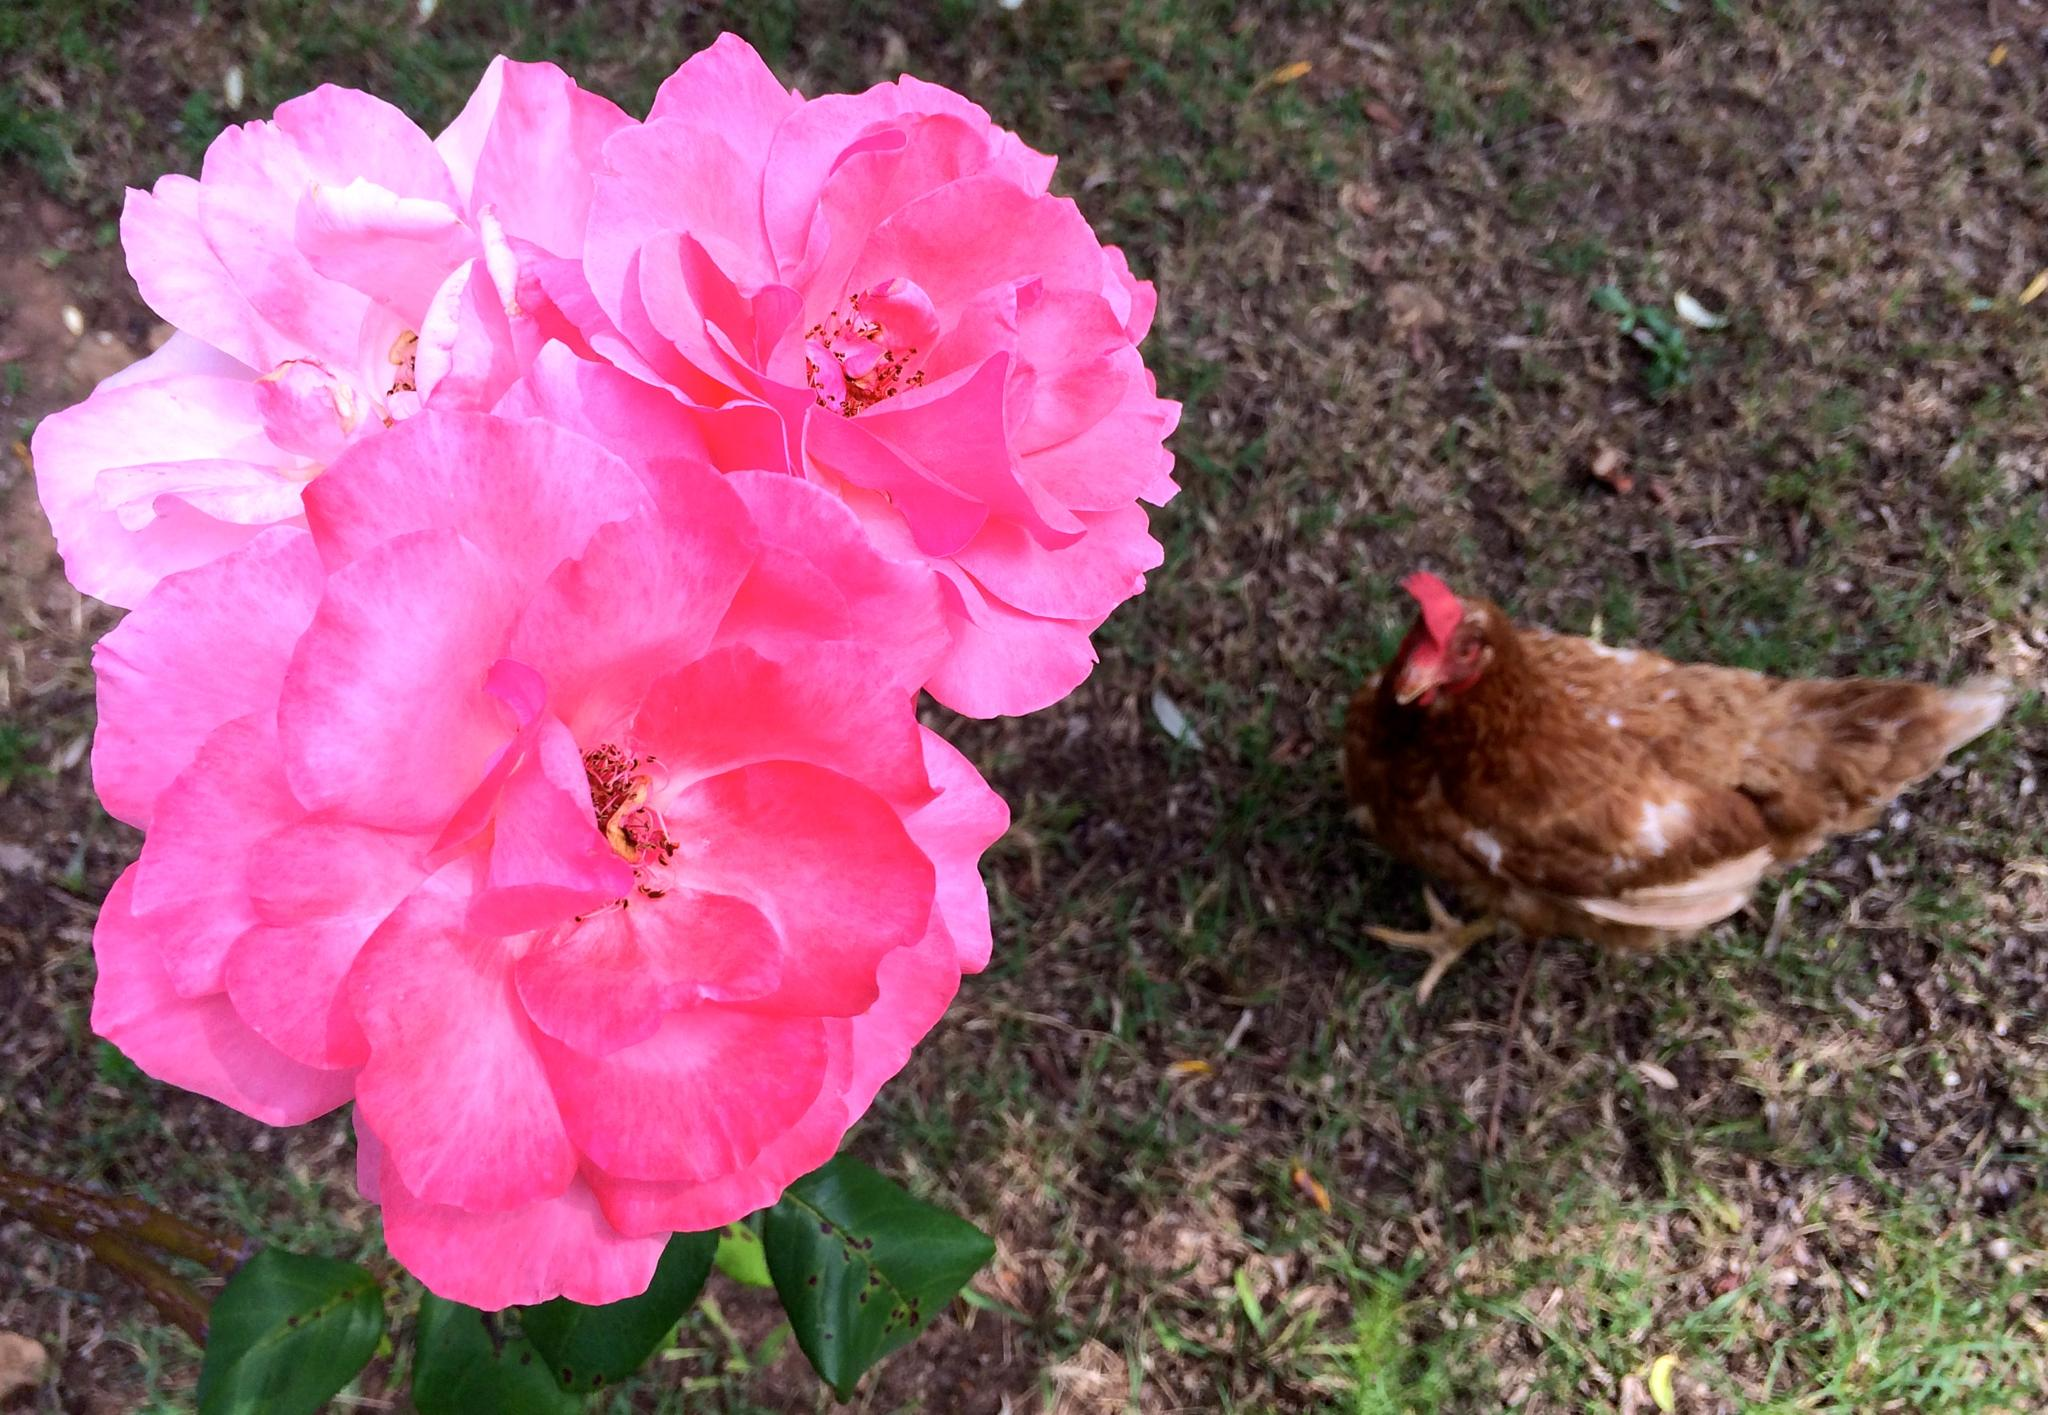 rose and a hen by m.etemadieh